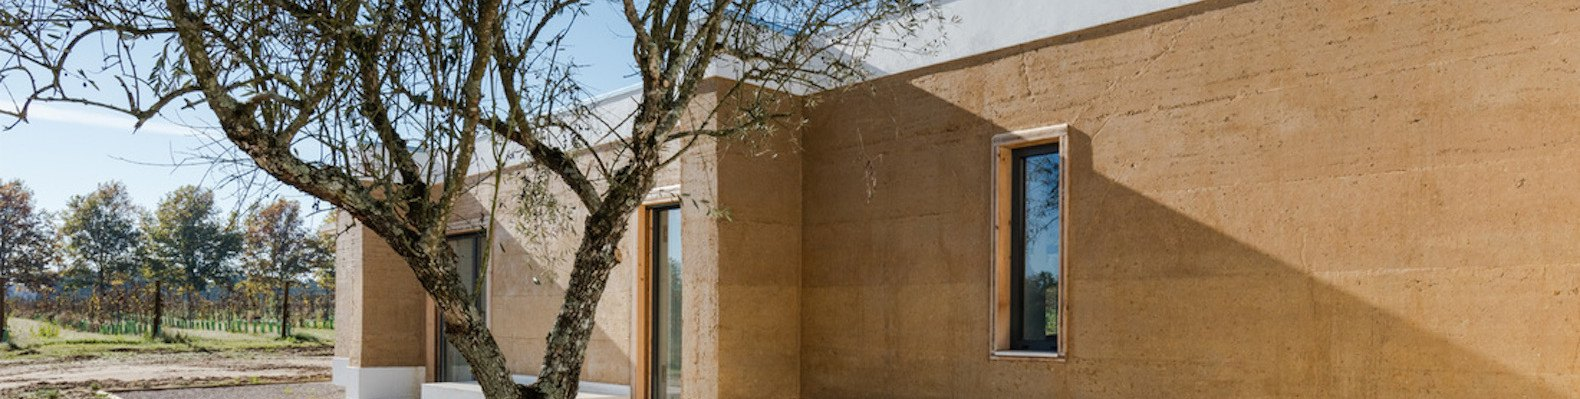 Vineyard House Uses Rammed Earth To Stay Cool In Portugalu0027s Hot Summers |  Inhabitat   Green Design, Innovation, Architecture, Green Building